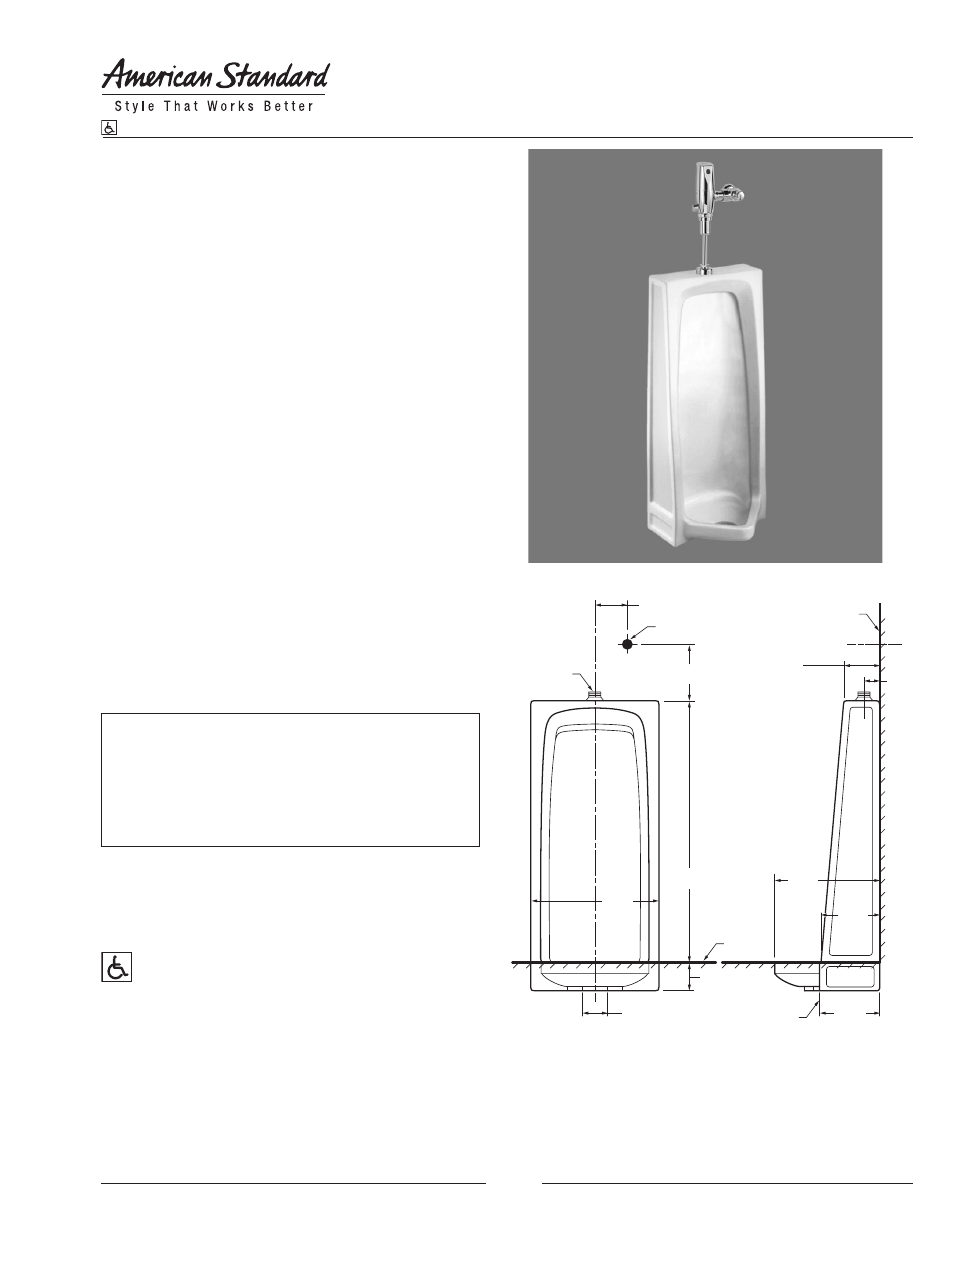 American Standard Stallbrook Urinal 6400 014 User S Manual